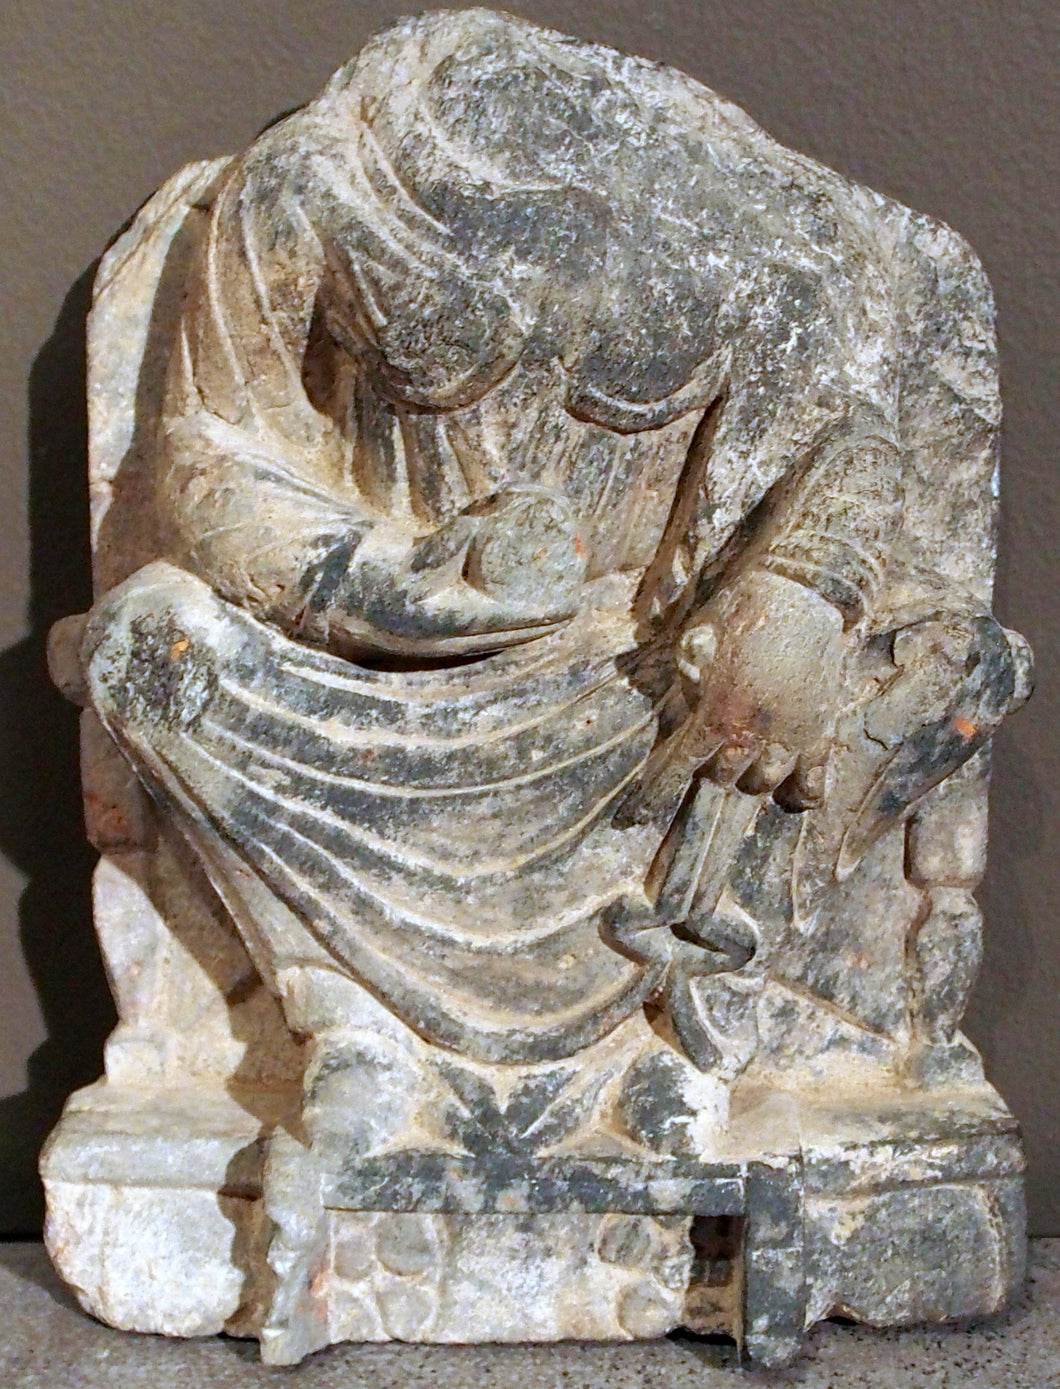 Gandhara acephalic statue of Maitreya, the Buddha of the future